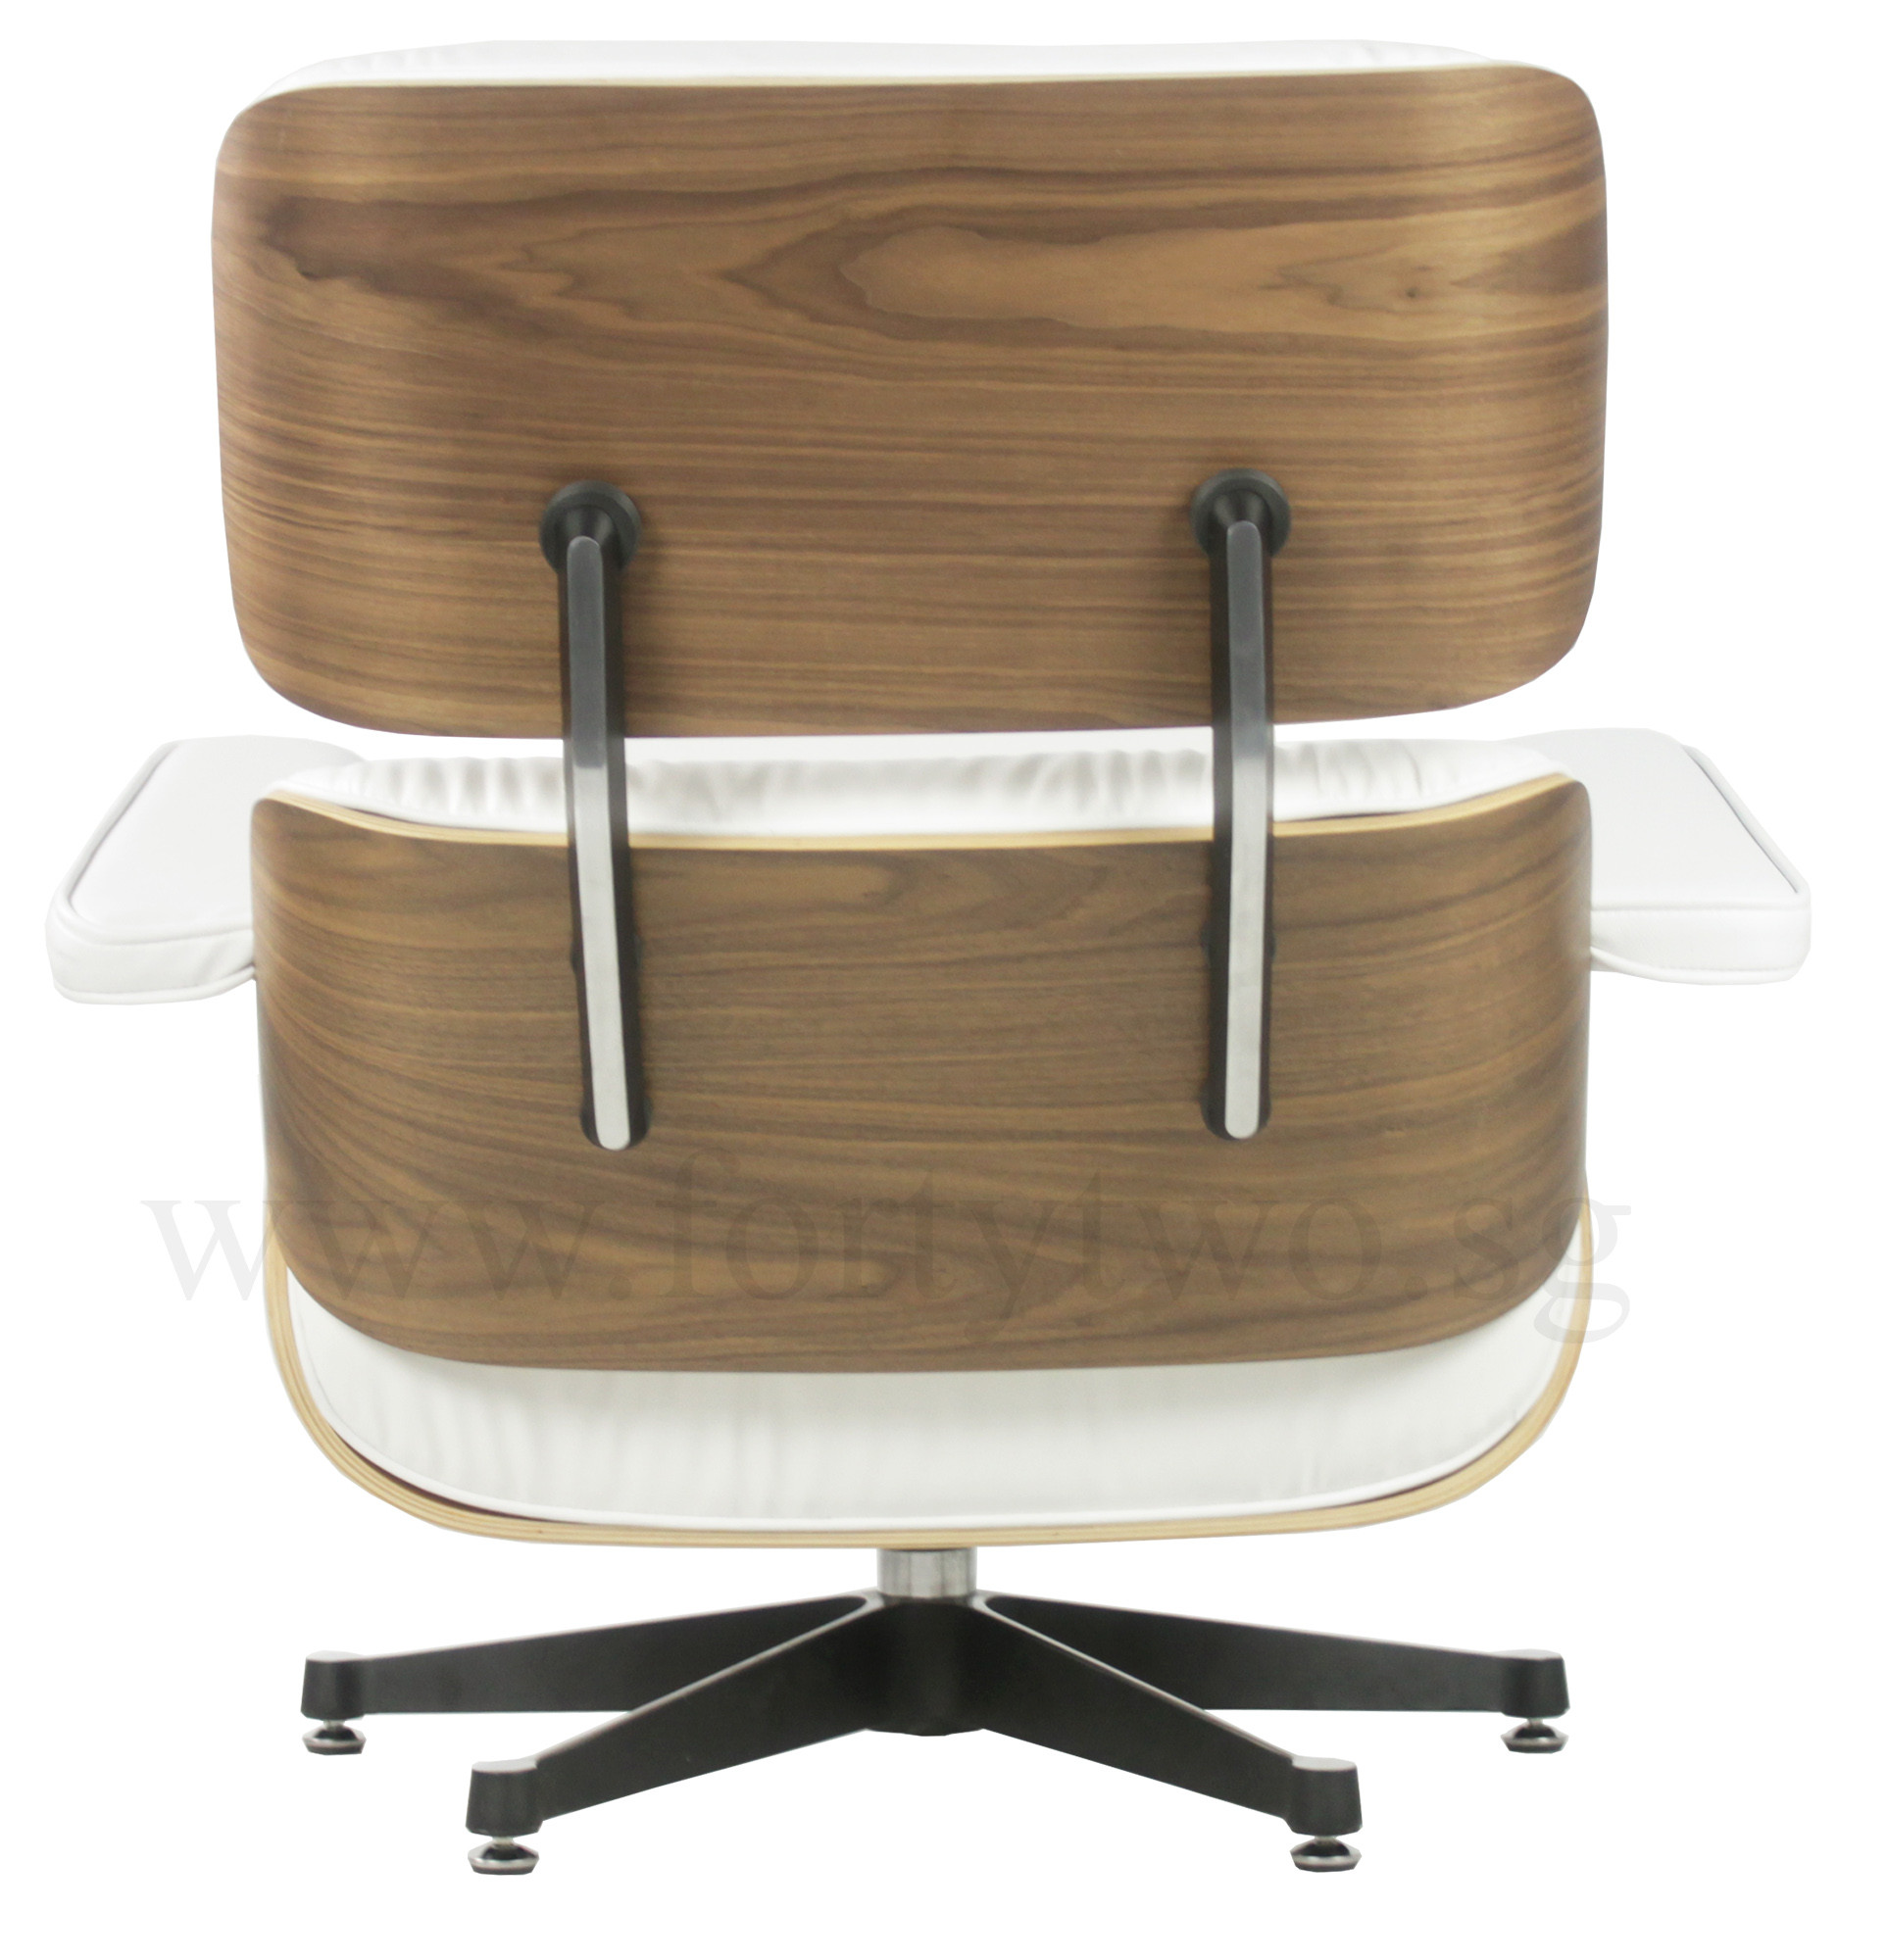 fake eames chair black covers with blue sash designer replica lounge white leather furniture regular price s 1 799 00